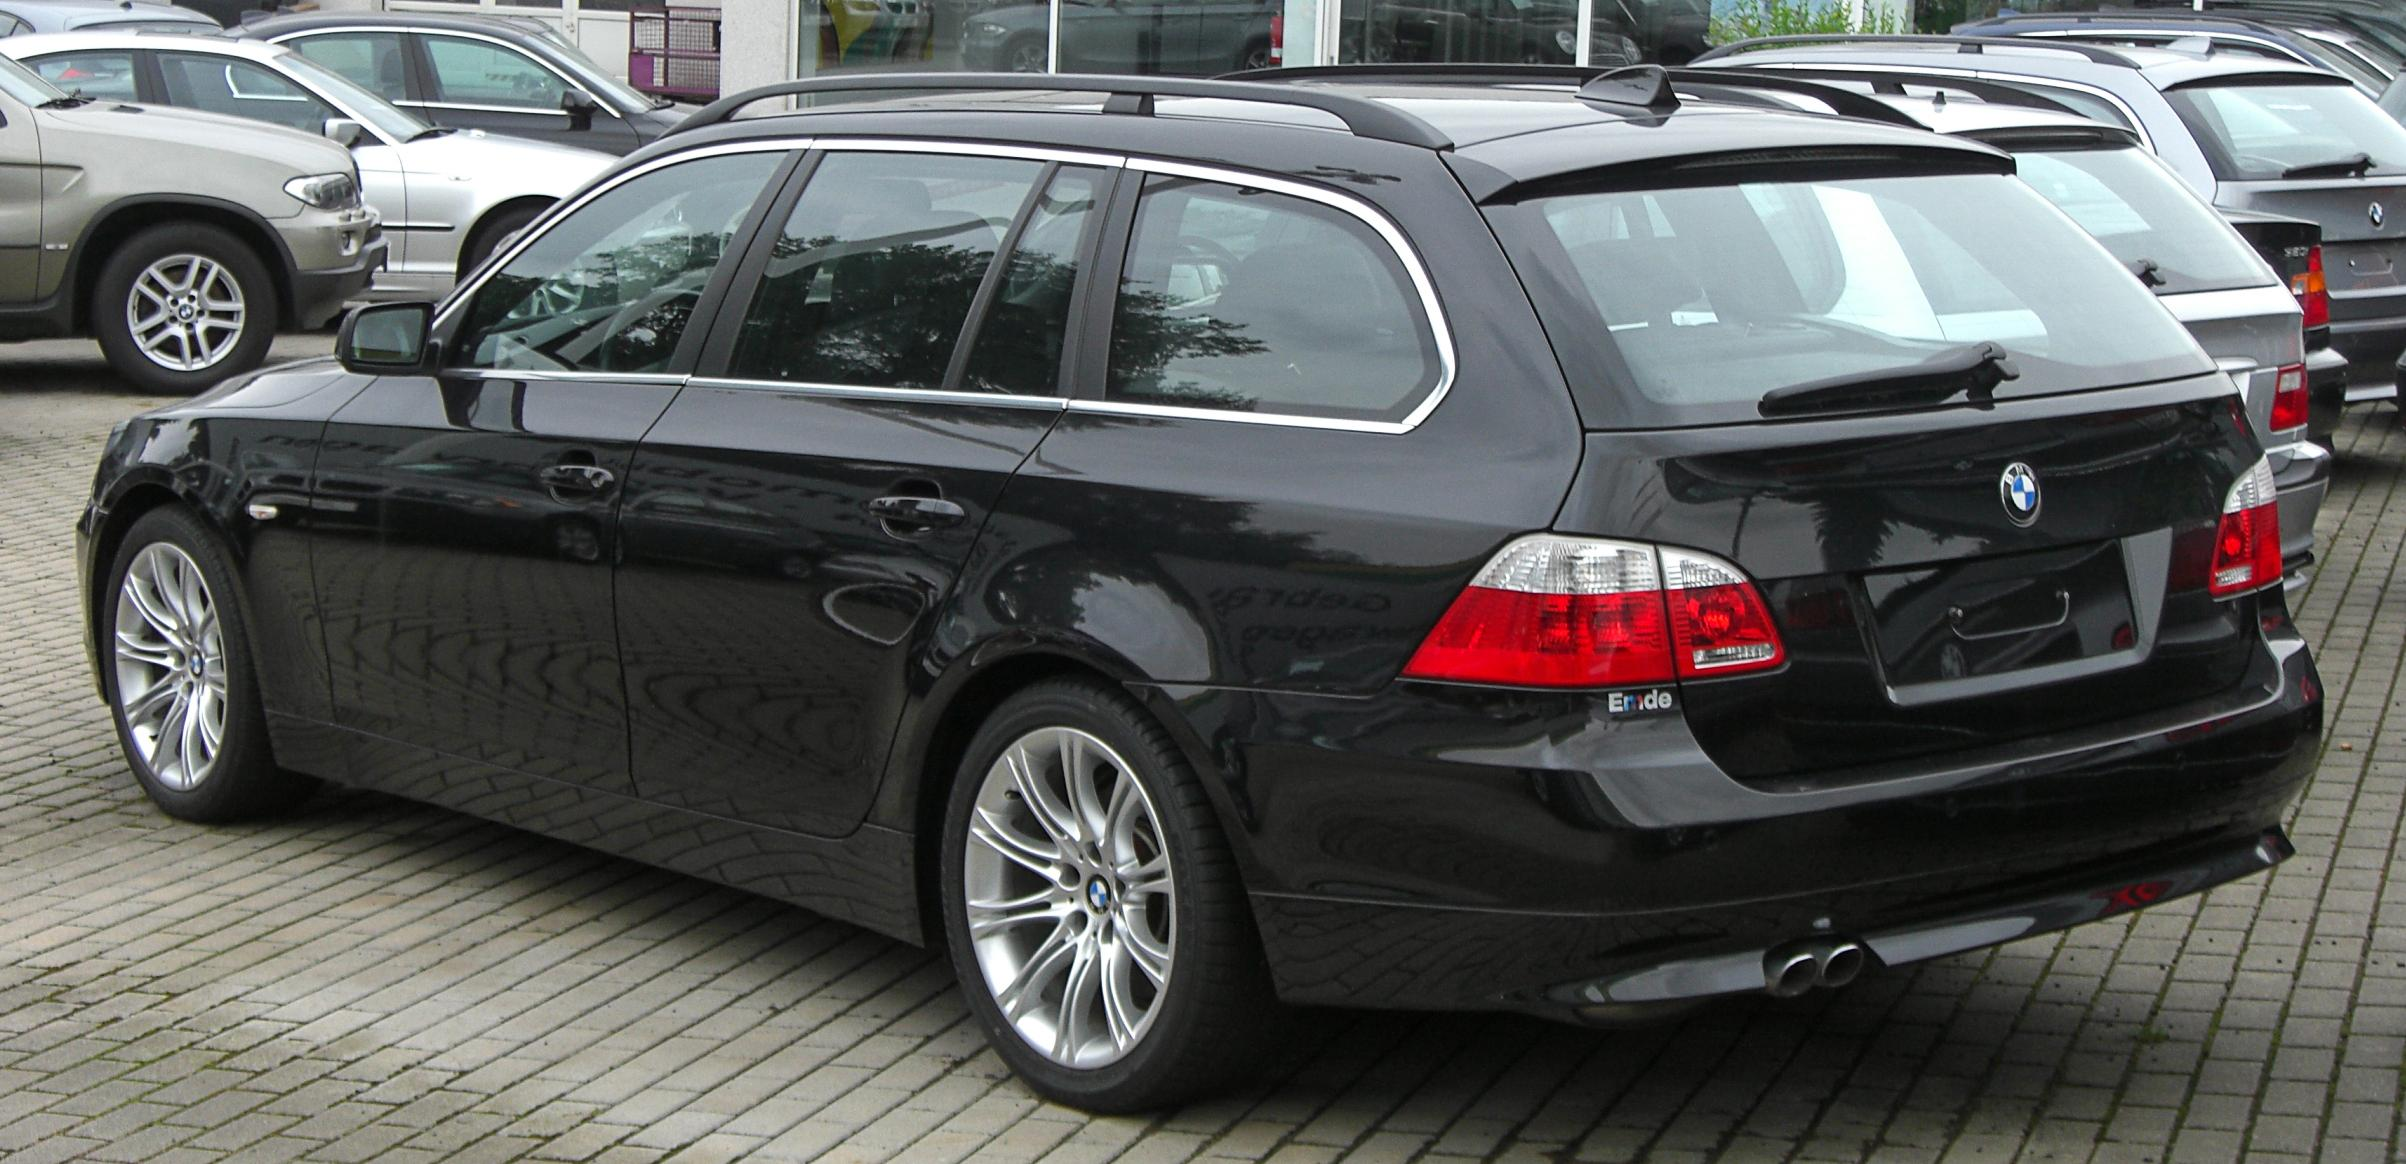 file bmw 5er touring e61 rear jpg wikimedia commons. Black Bedroom Furniture Sets. Home Design Ideas